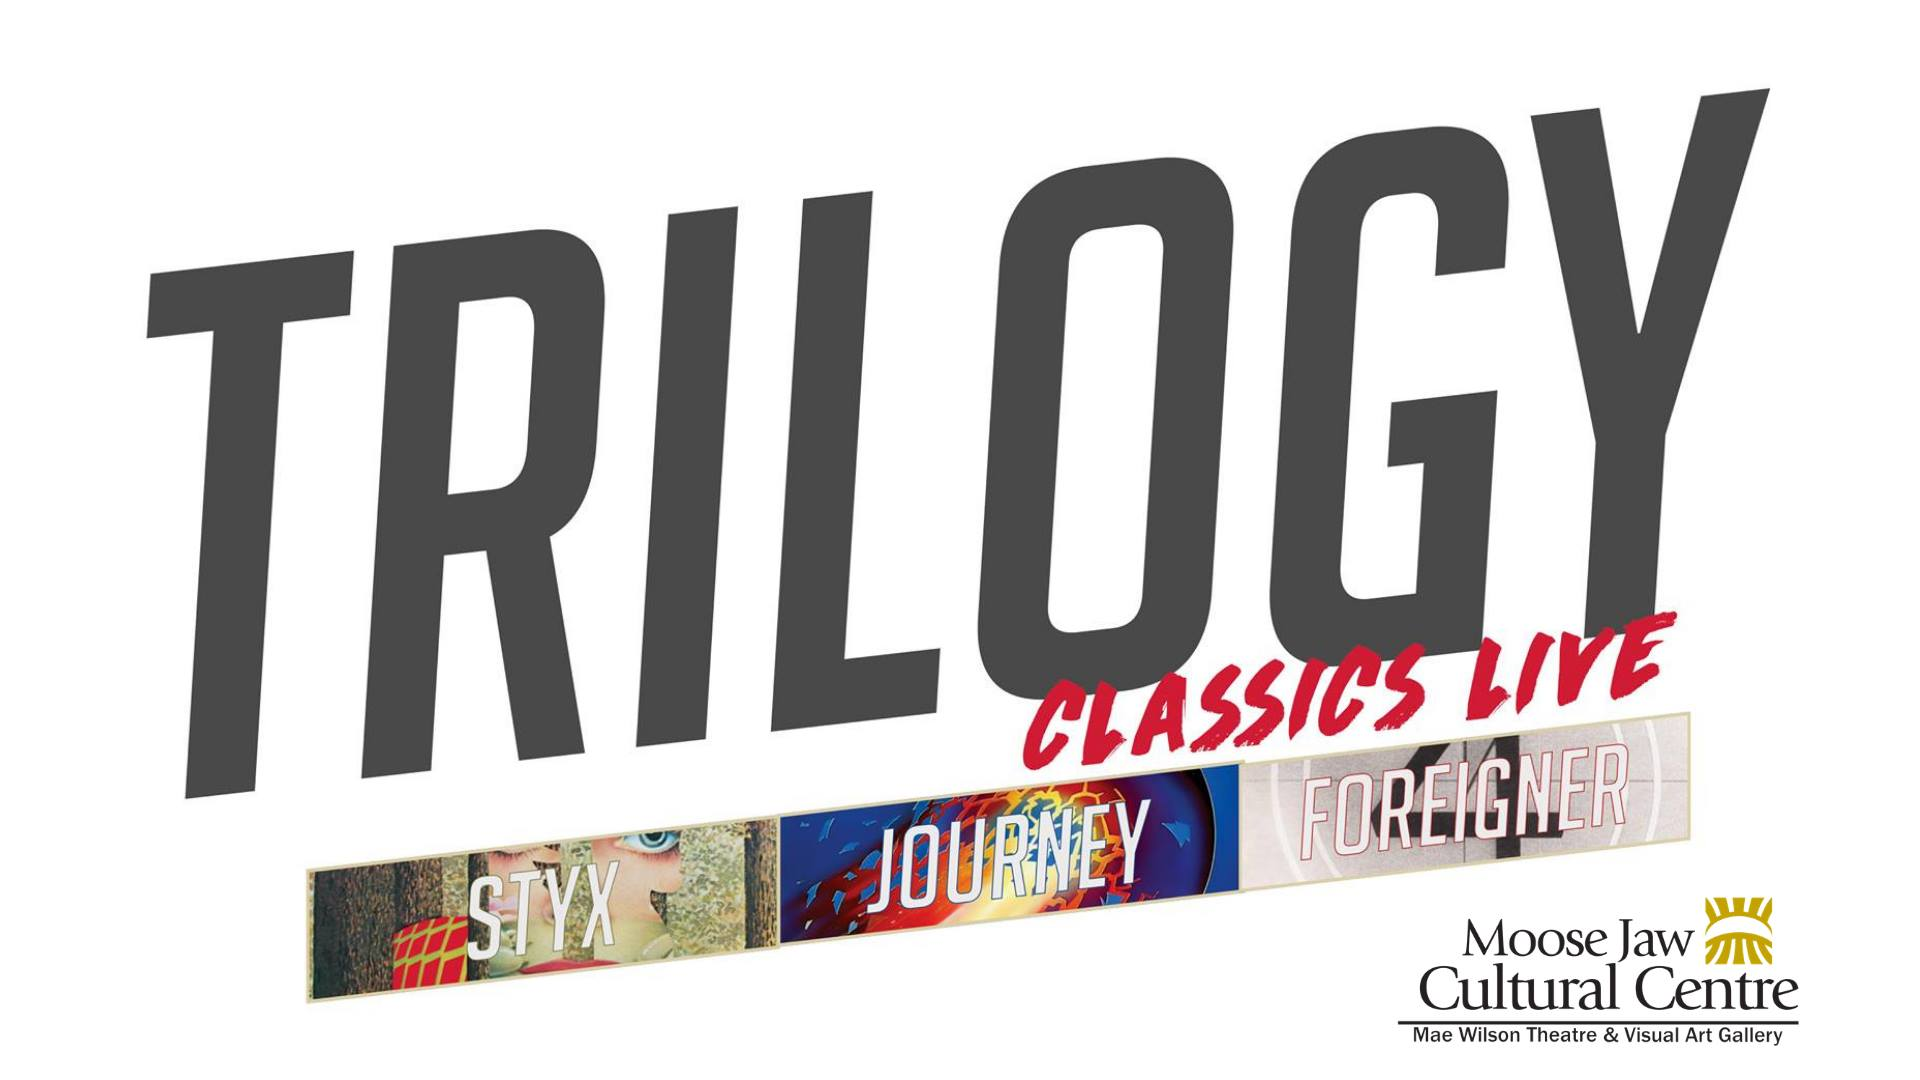 Trilogy Classics Live is a group of 5 world class, studio journeymen musicians/entertainers brought together by their admiration for the legendary sounds of 3 of the world's most successful, multi-platinum selling acts of the commercial rock era....  JOURNEY, FOREIGNER and STYX   Trilogy Classics Live will take you back to the vinyl era performing hit after hit from a set list catalog from most memorable and successful songs ever written!  Hear all your favorite hits, recreated live on stage exactly as the original recordings, sound for sound and note for note.  Come out and sing along. You will know all the words.